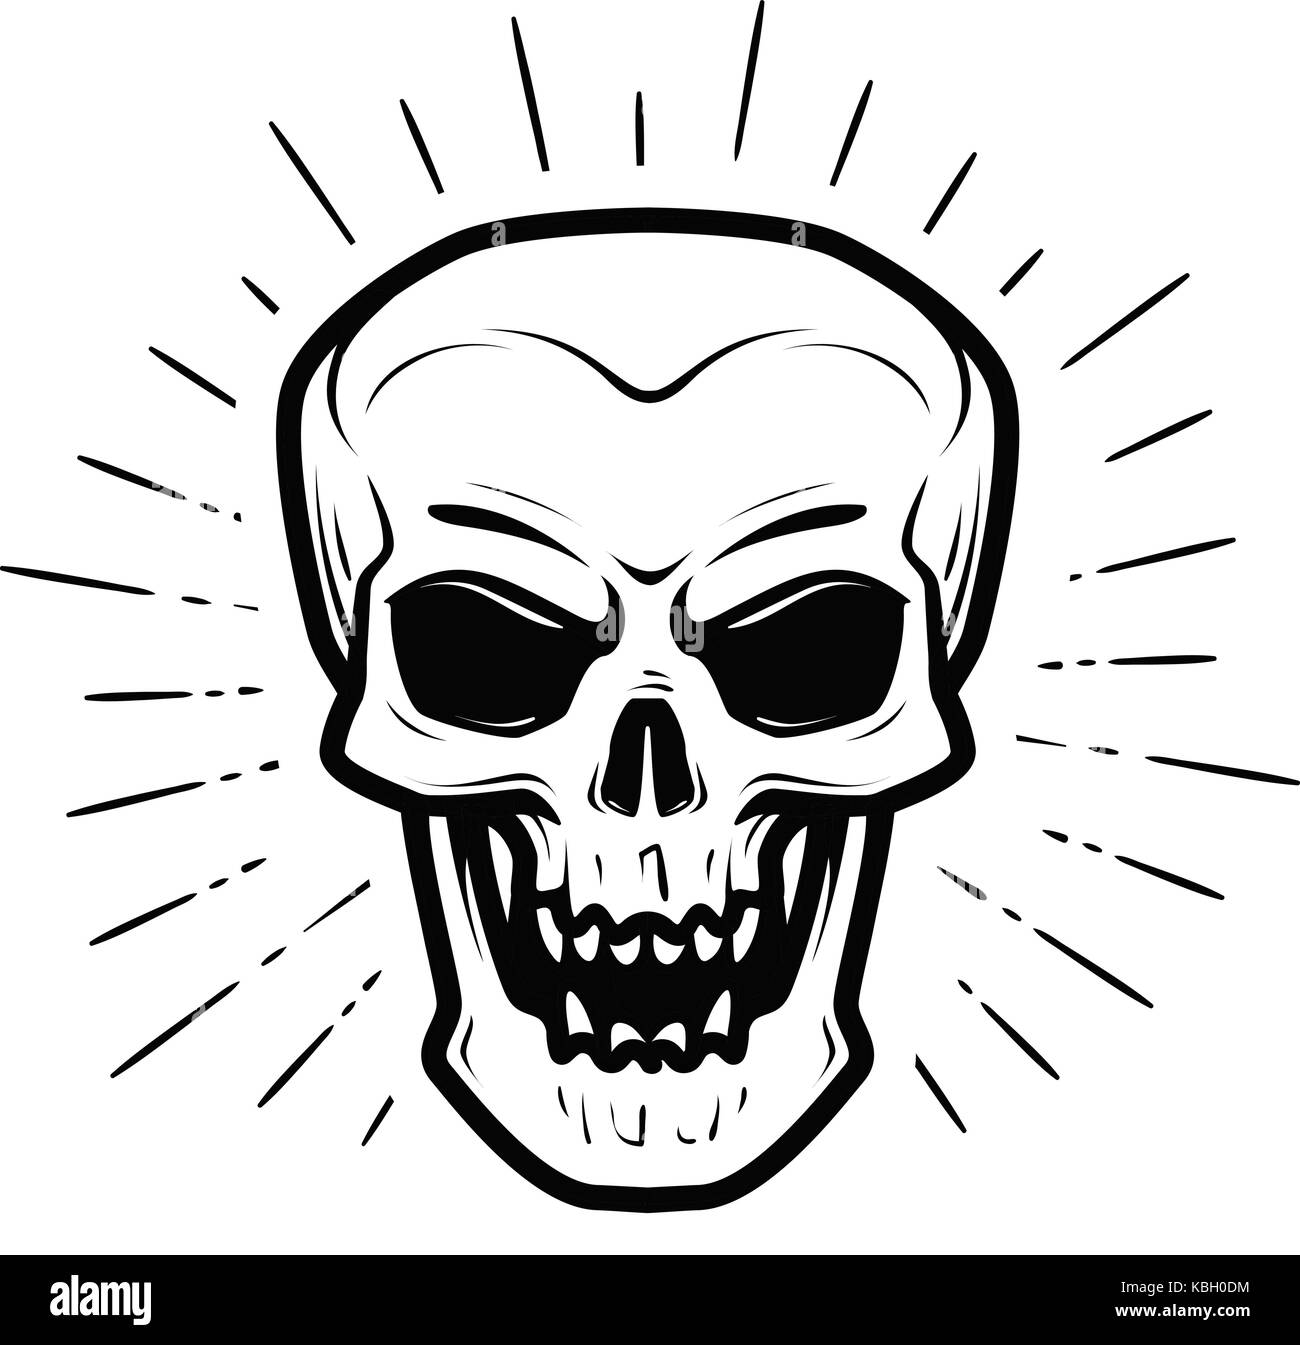 Scary human skull. Jolly Roger, halloween, zombie, skeleton, death symbol. Vector illustration - Stock Image